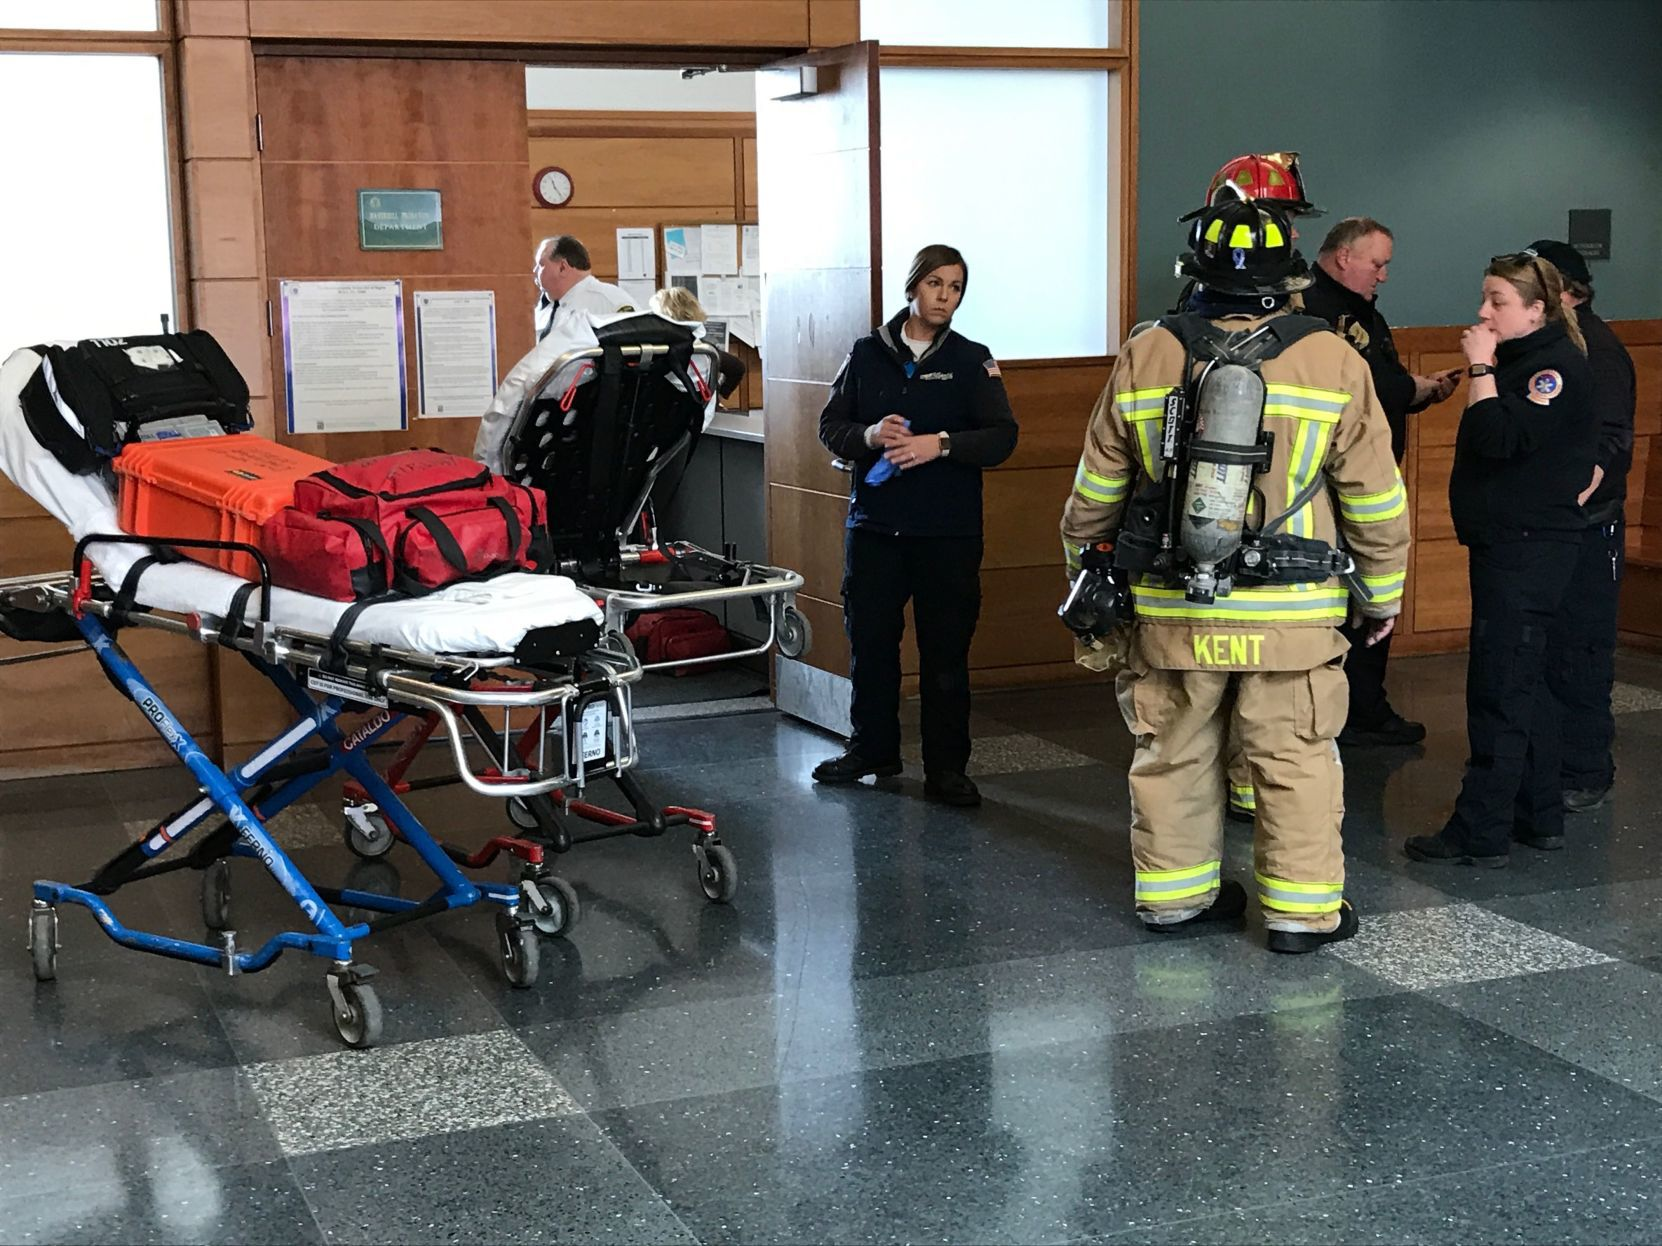 Emergency responders investigate reported spill Emergency workers